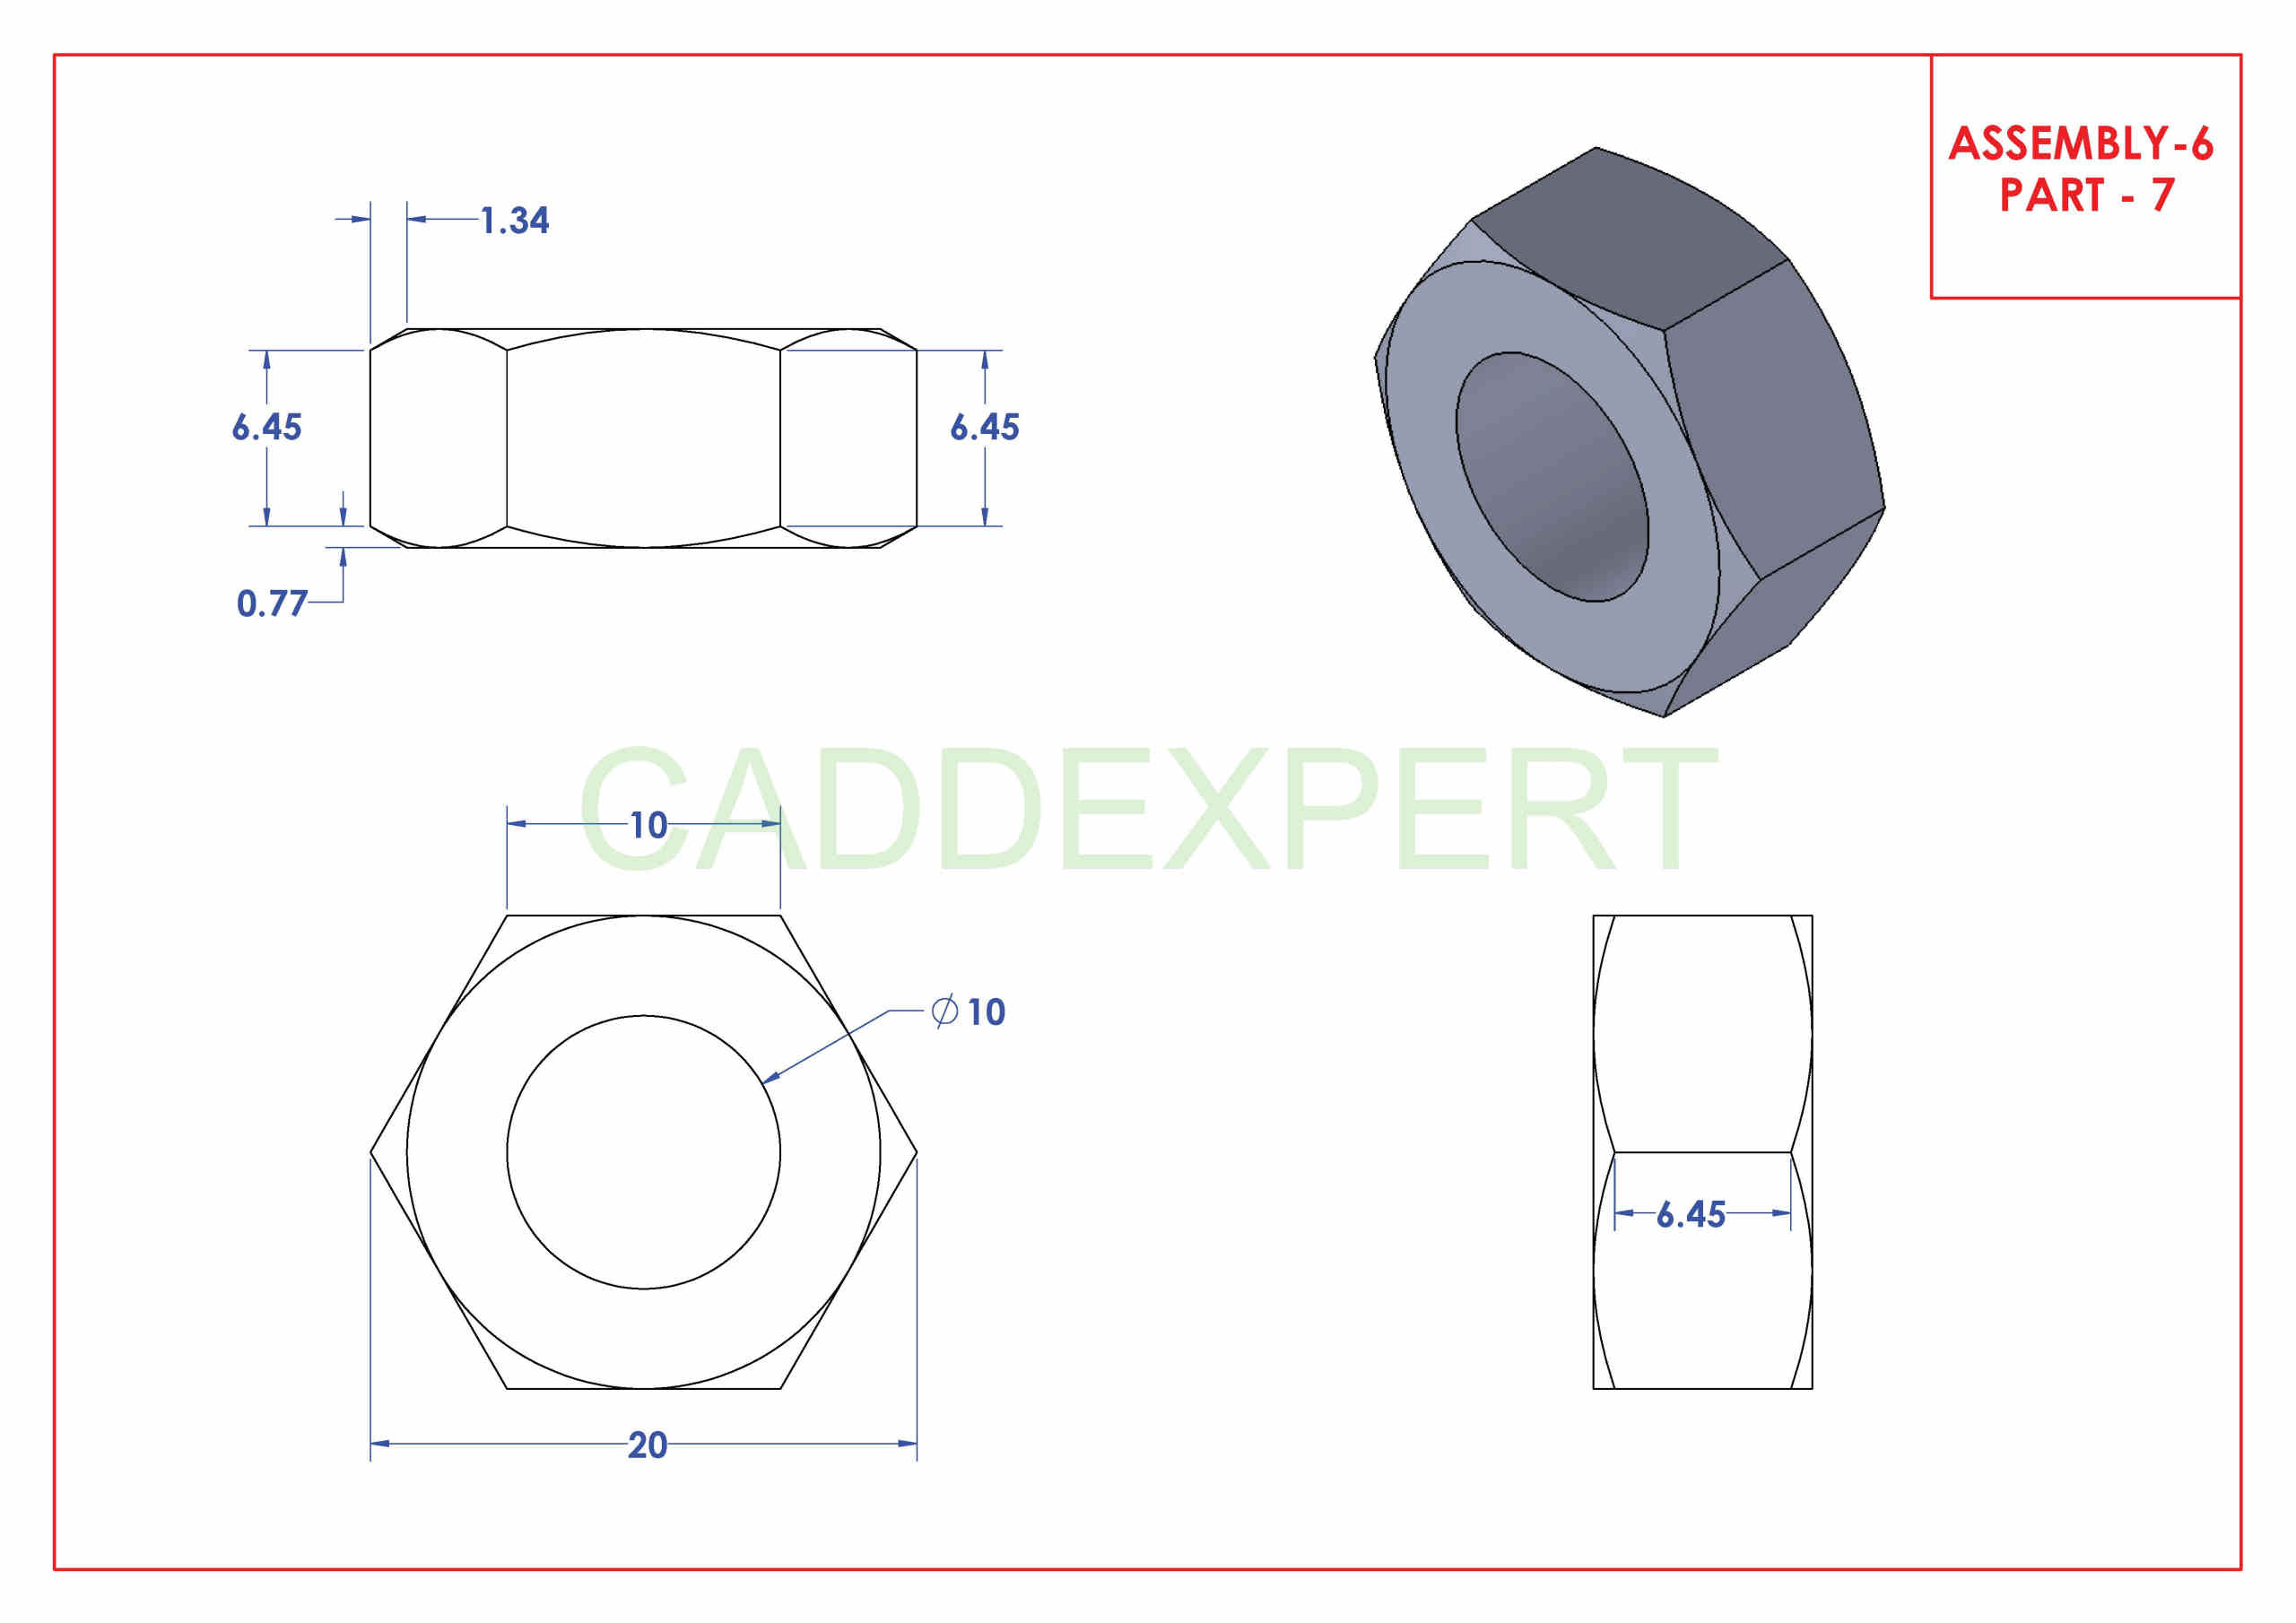 SOLIDWORKS ASSEMBLY PART - 7